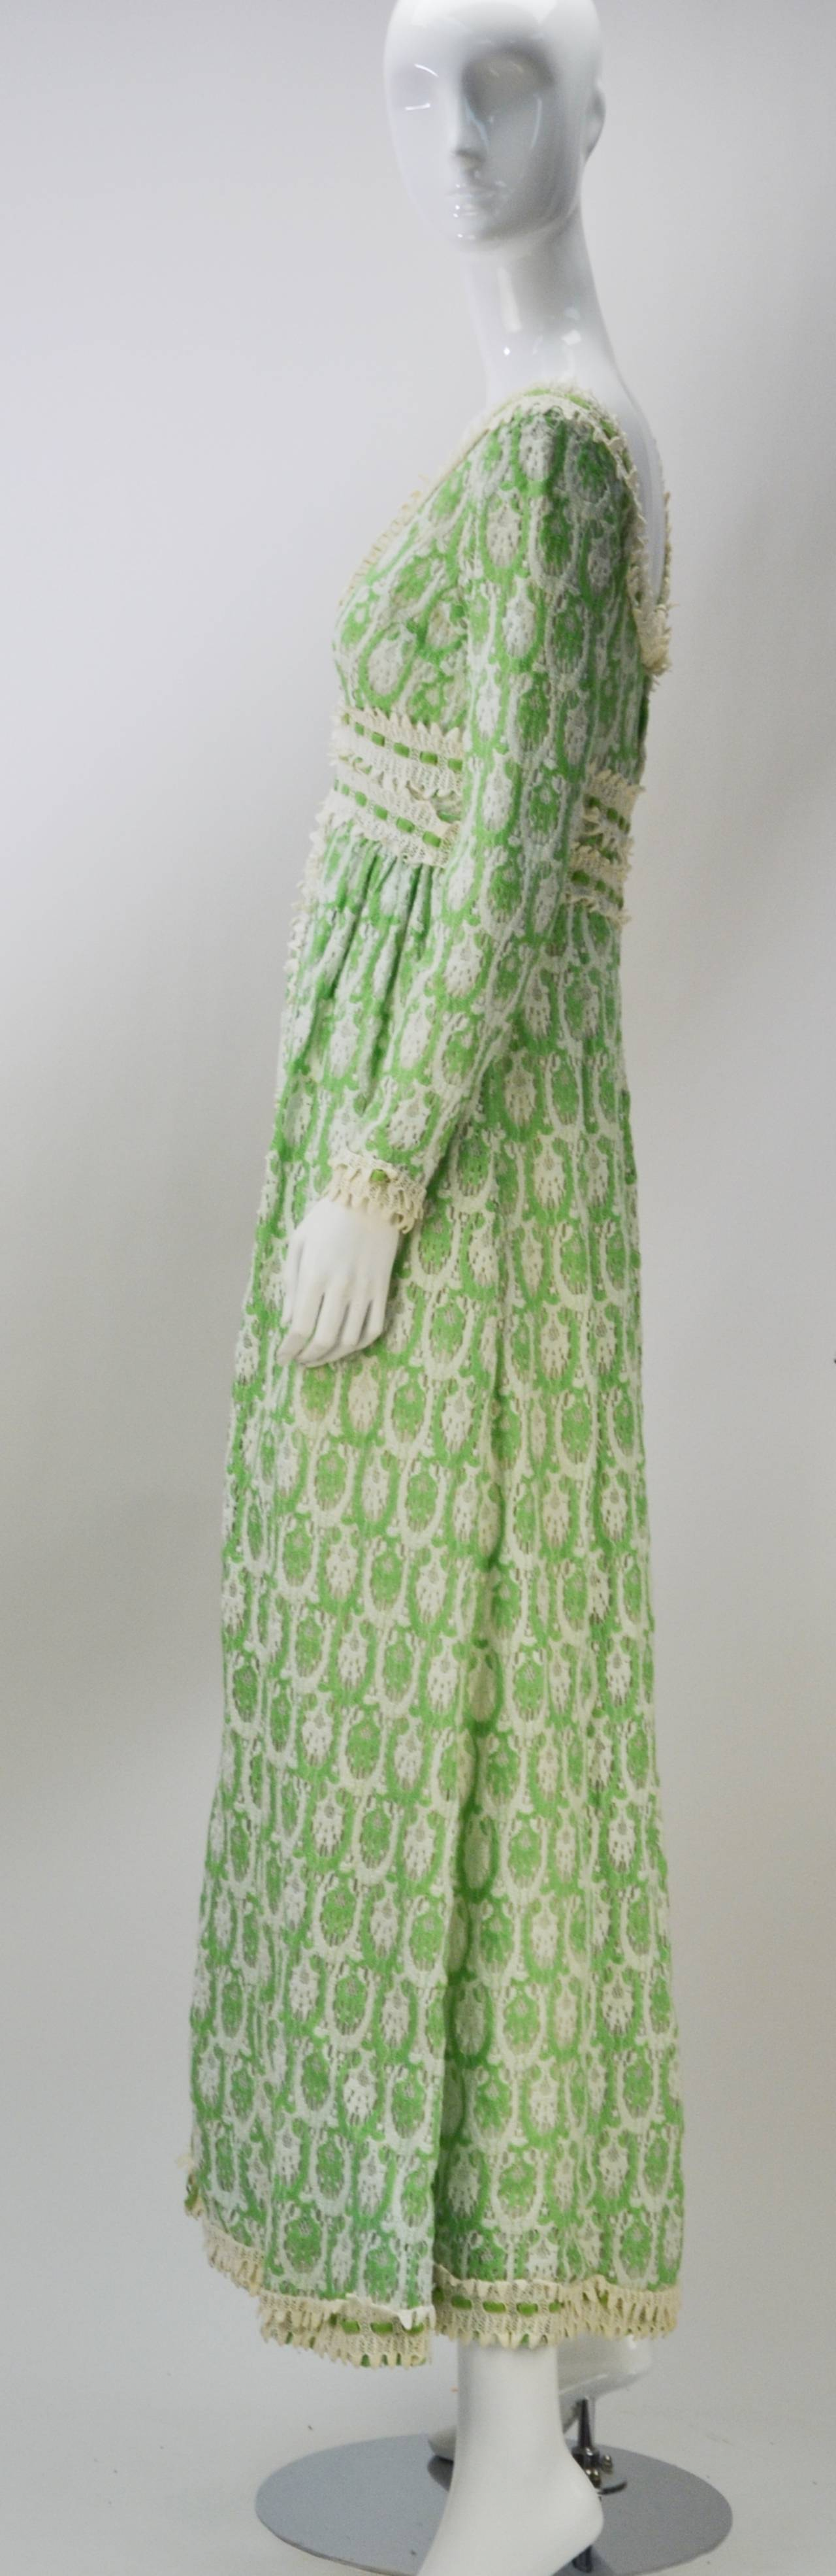 Channel some of your inner bohemian this summer with the fantastic 1970's White and Green open crochet knit lace dress with ribbon trim.  Crochet with velvet ribbon trim along the edges of the v-neckline, waistline, sleeve and skirt hems. The dress